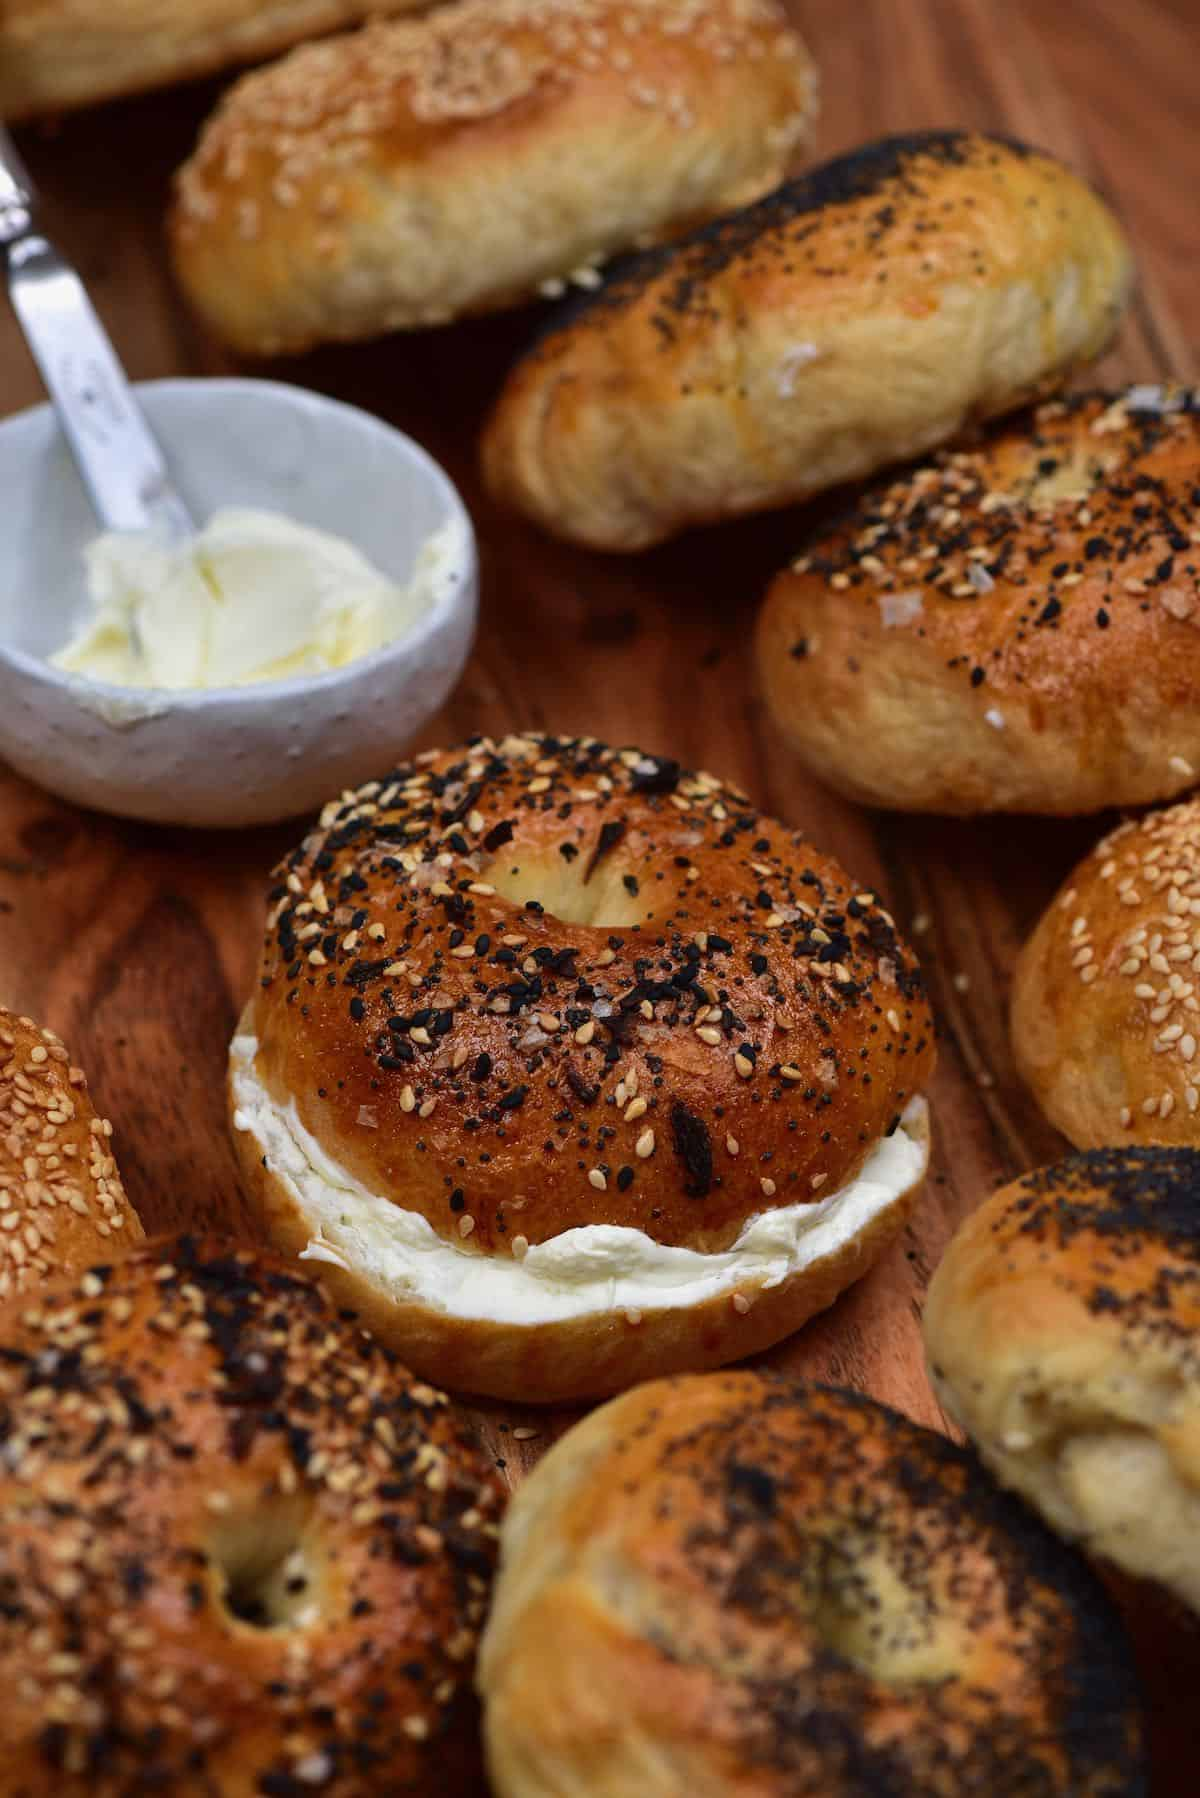 Bagel with cream cheese with other whole bagels around it